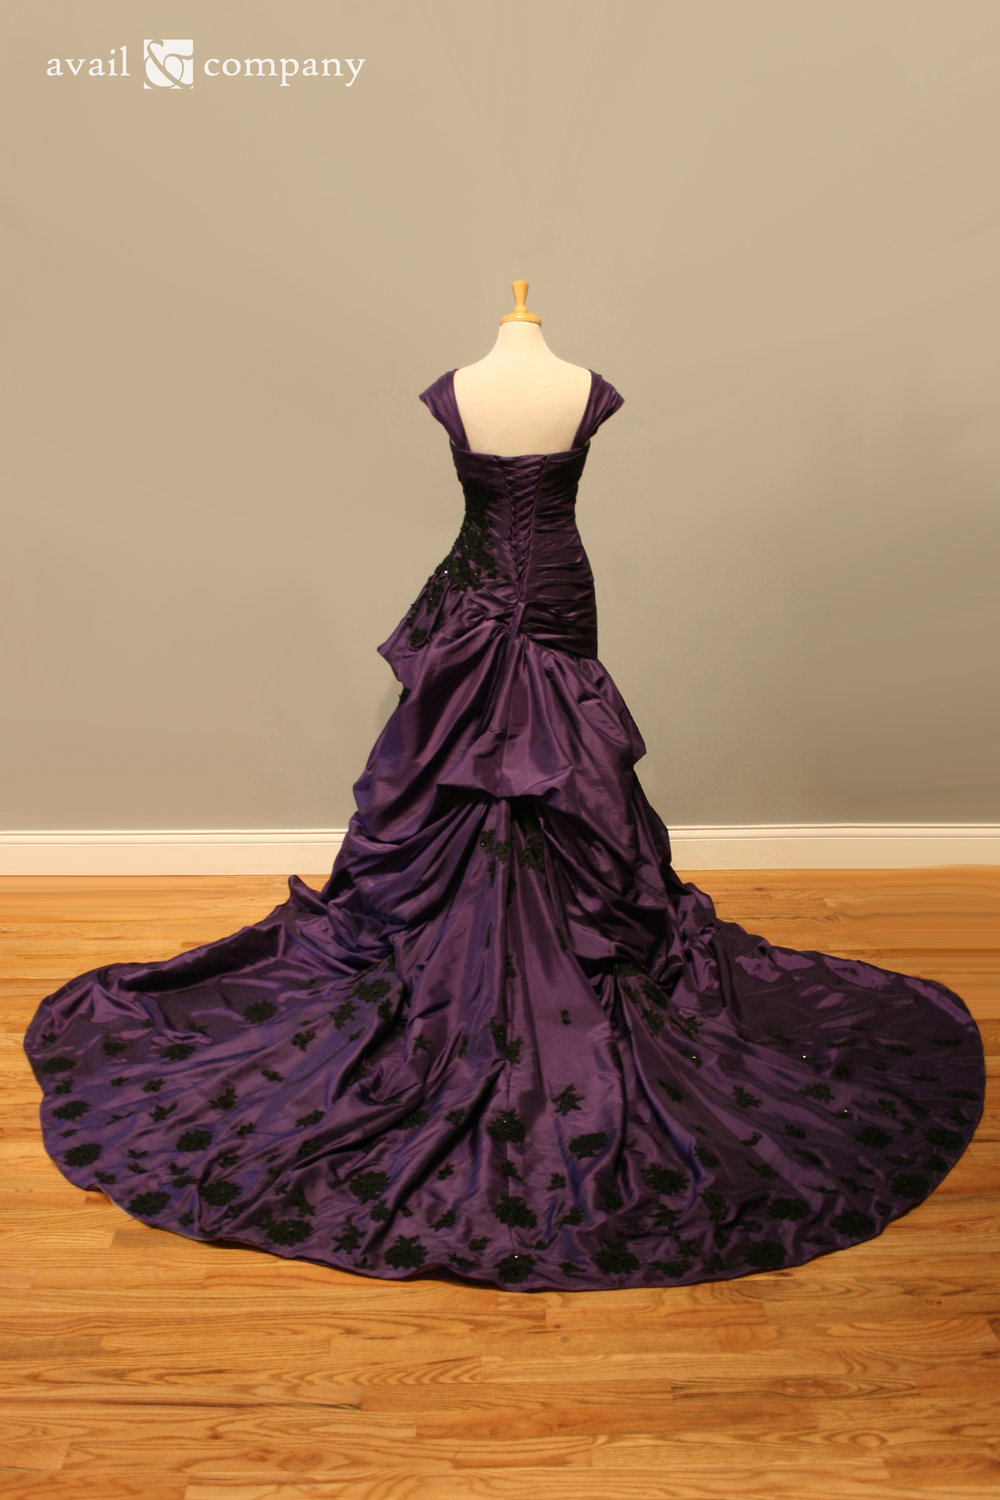 !Purple Wedding Dress Gothic Black Lace 004-0004.jpg